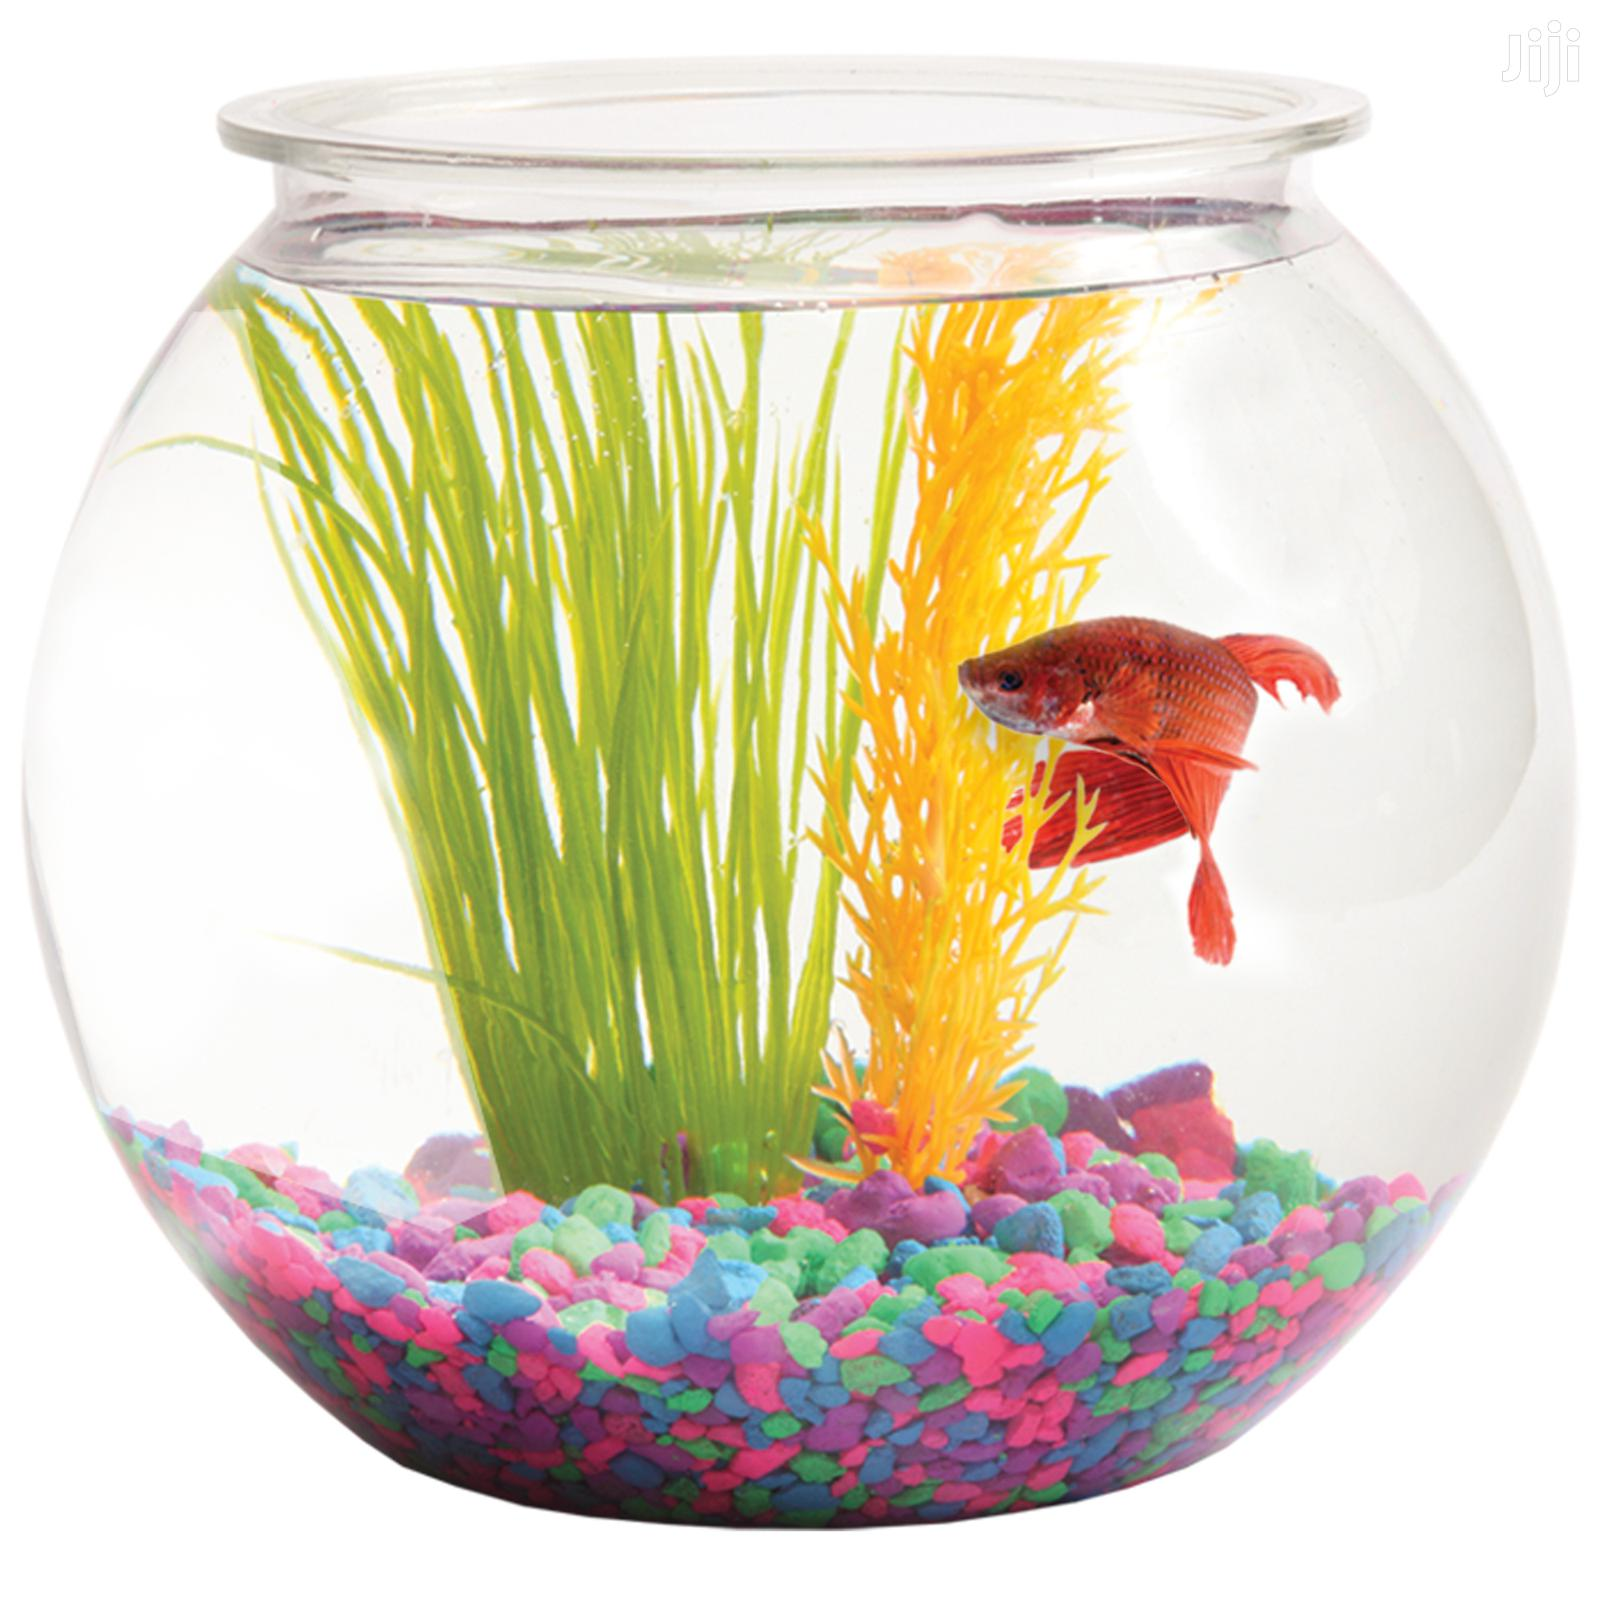 Fish Bowl -Medium